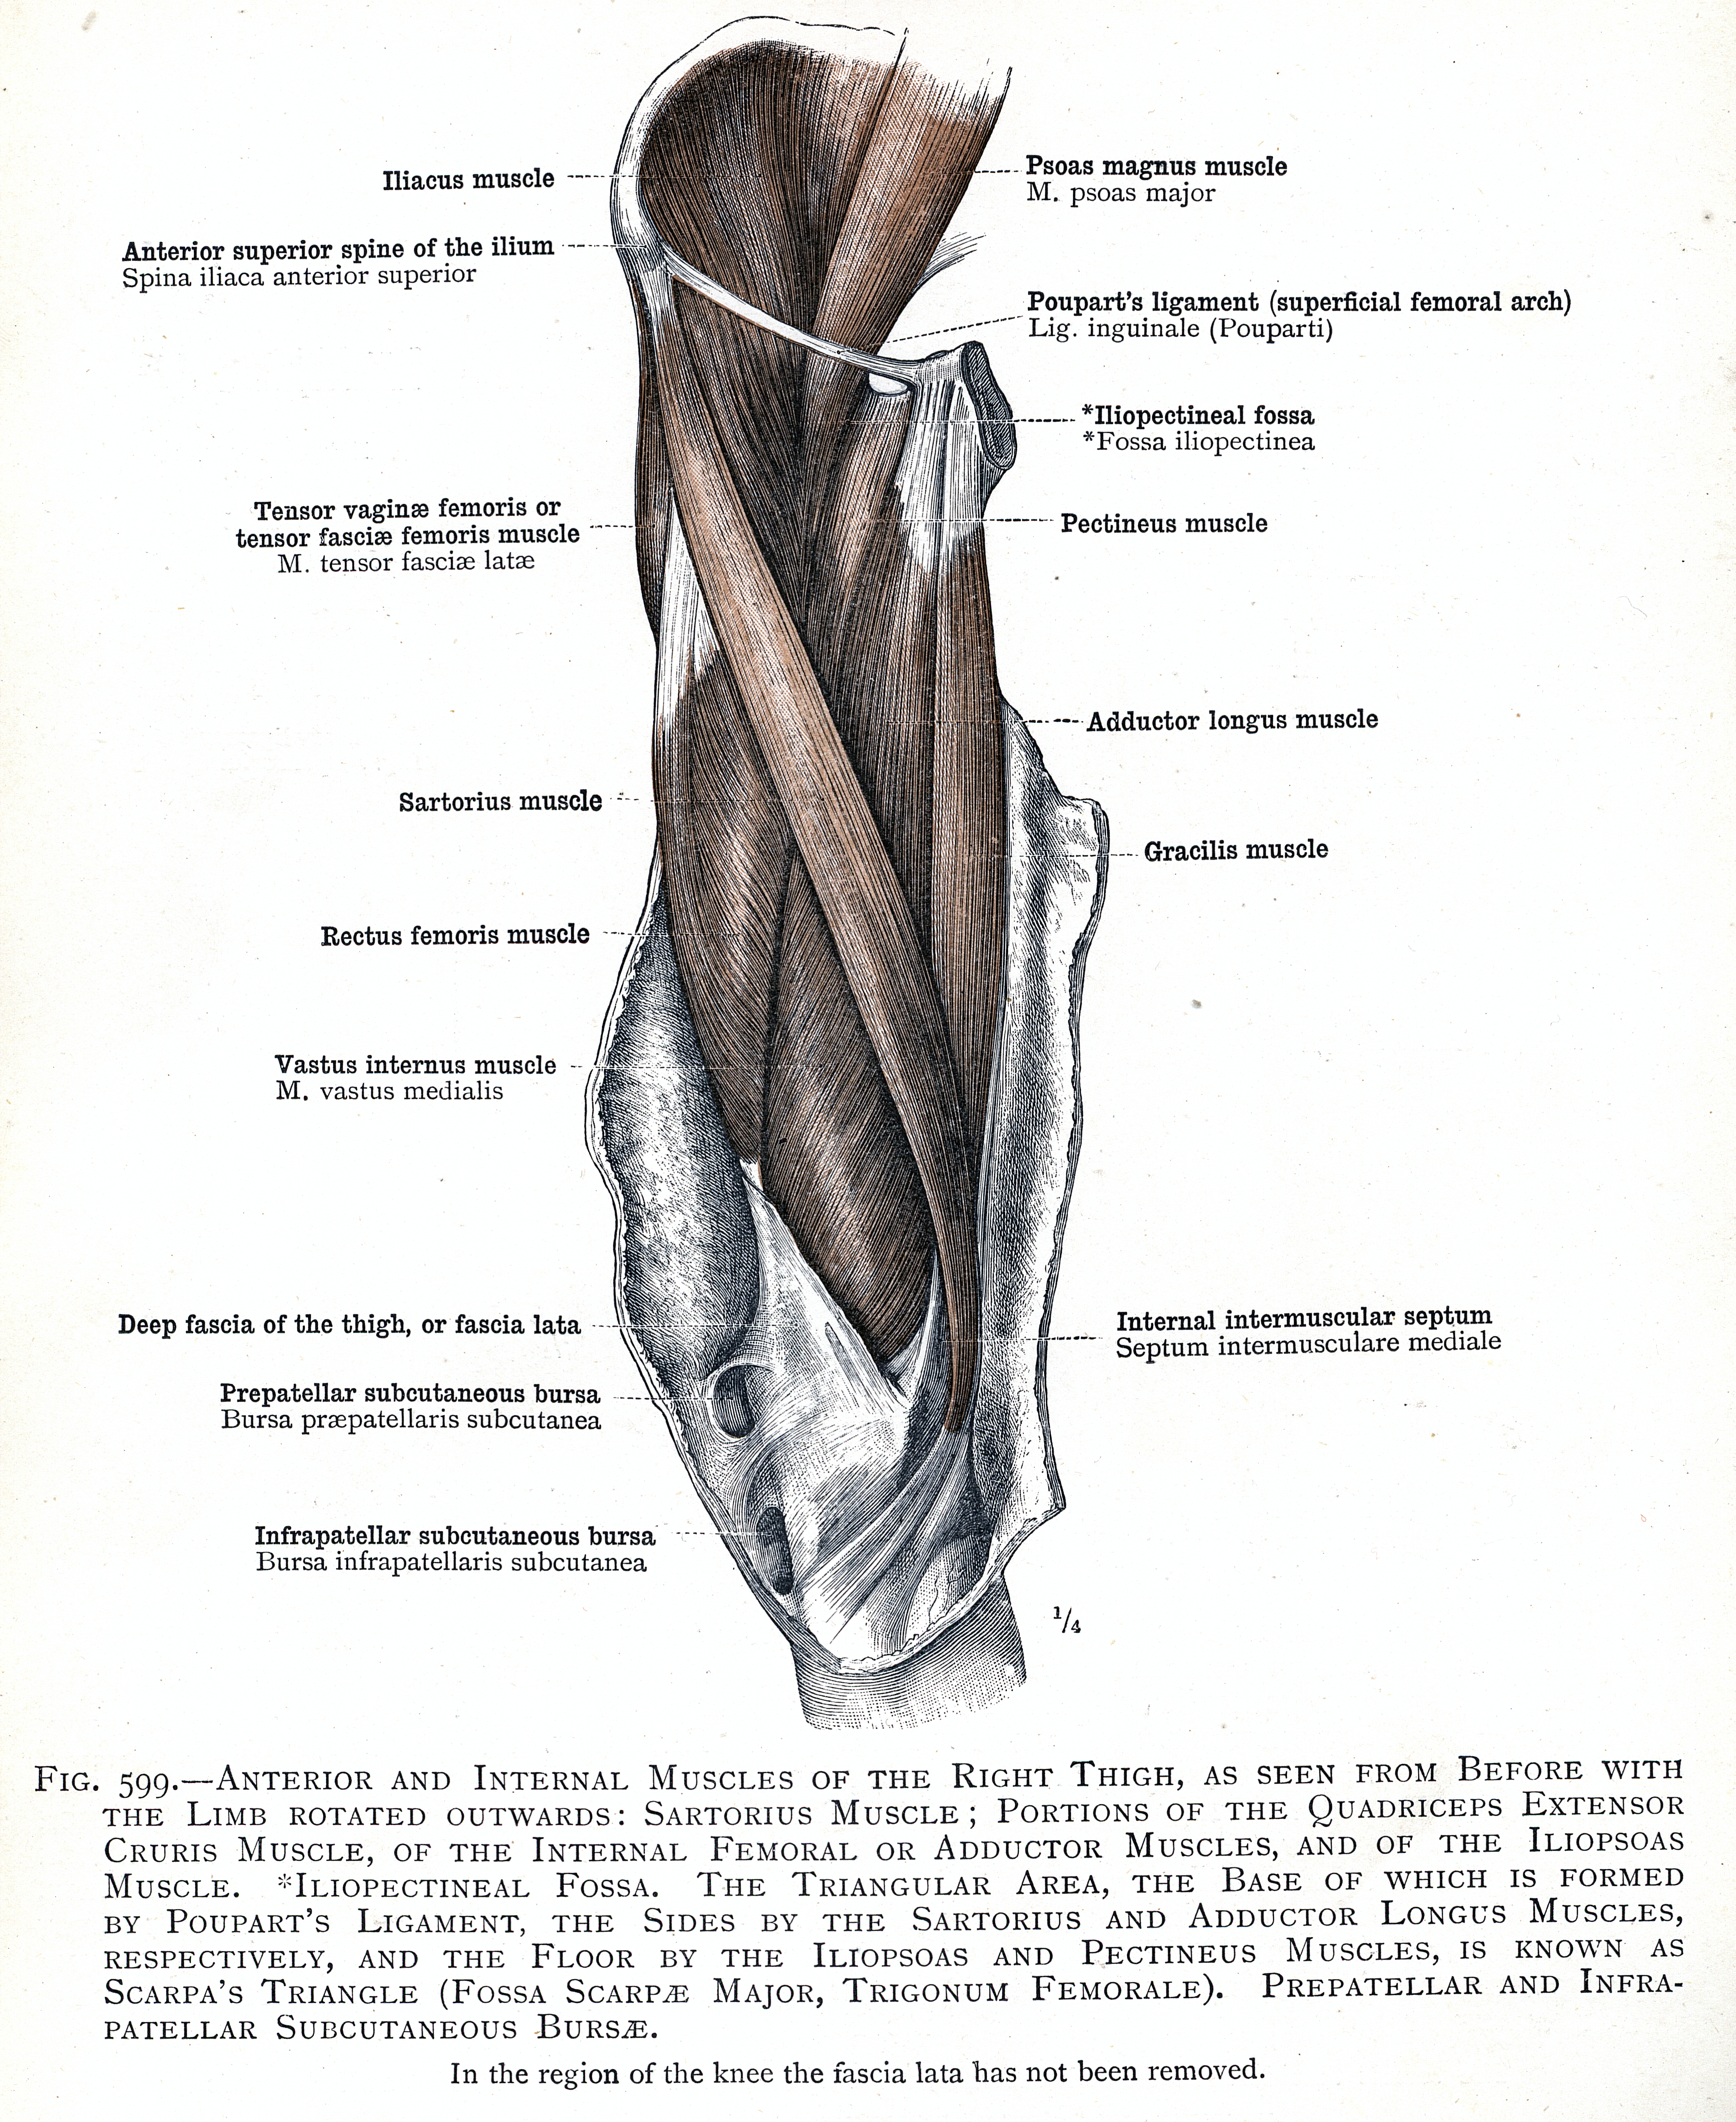 599. Anterior and internal muscles of the right thigh: sartorius ...